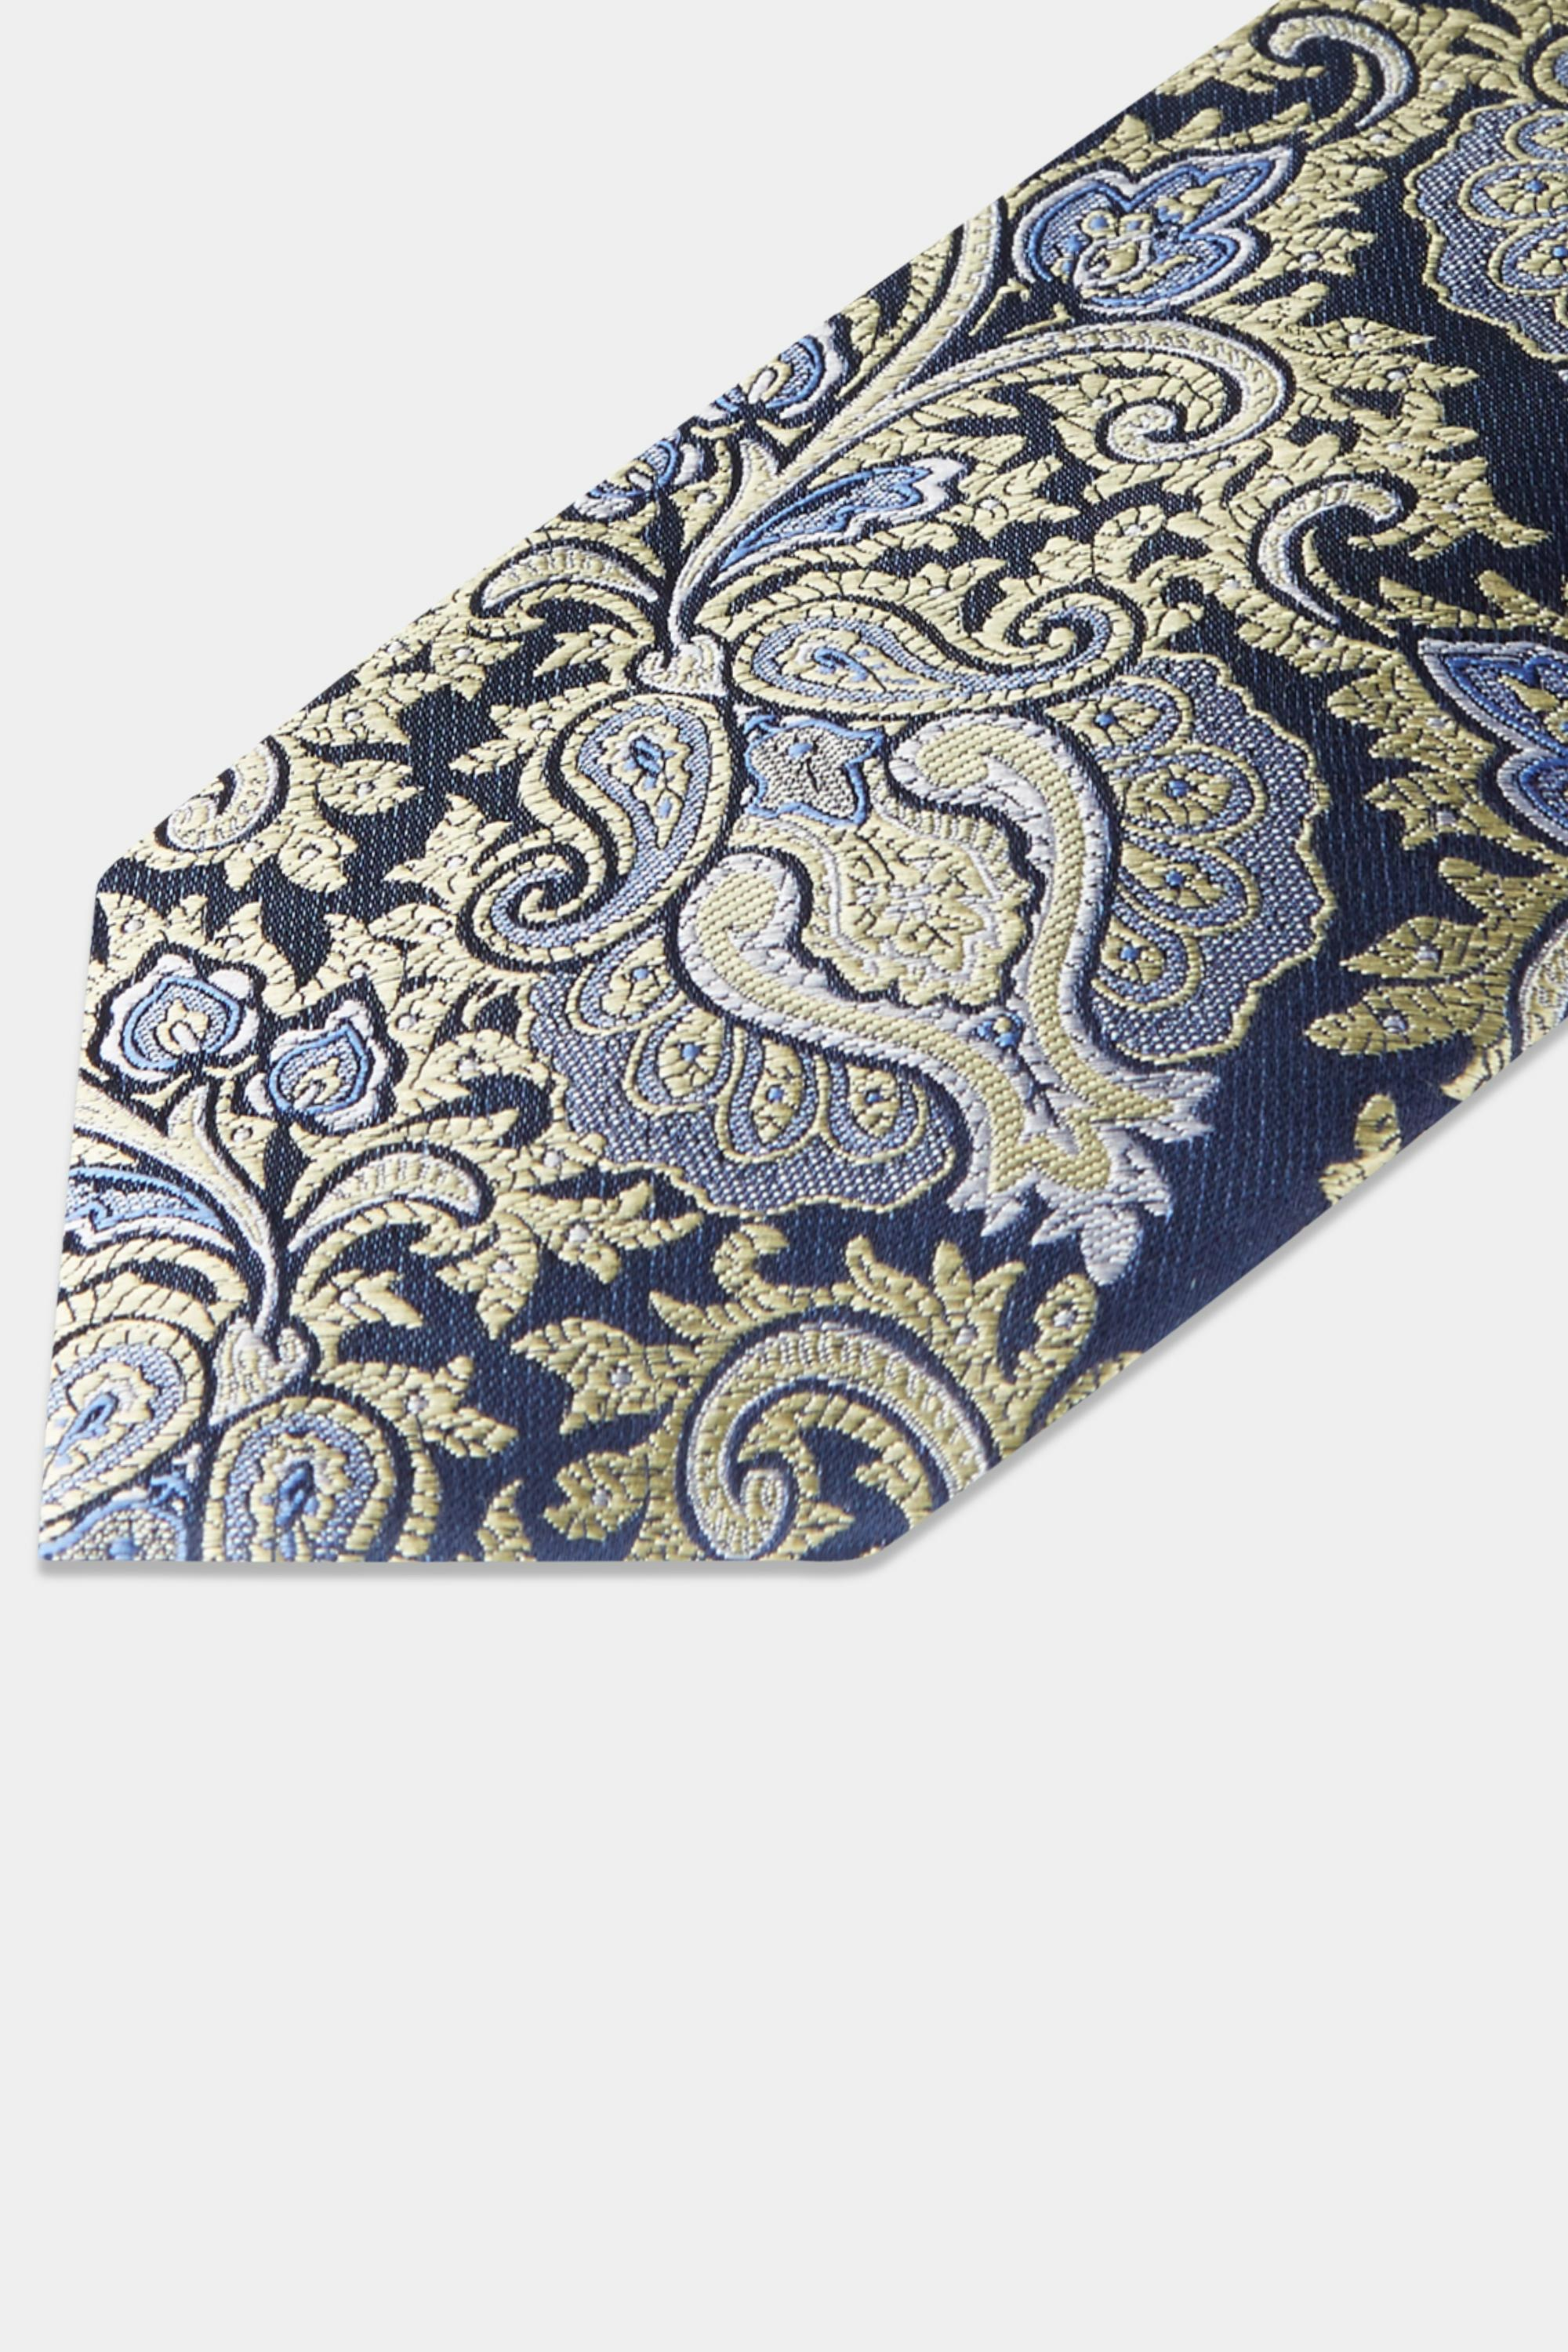 0ae3e262f2a9 Moss Esq. Gold & Navy Large Paisley Tie in Metallic for Men - Lyst